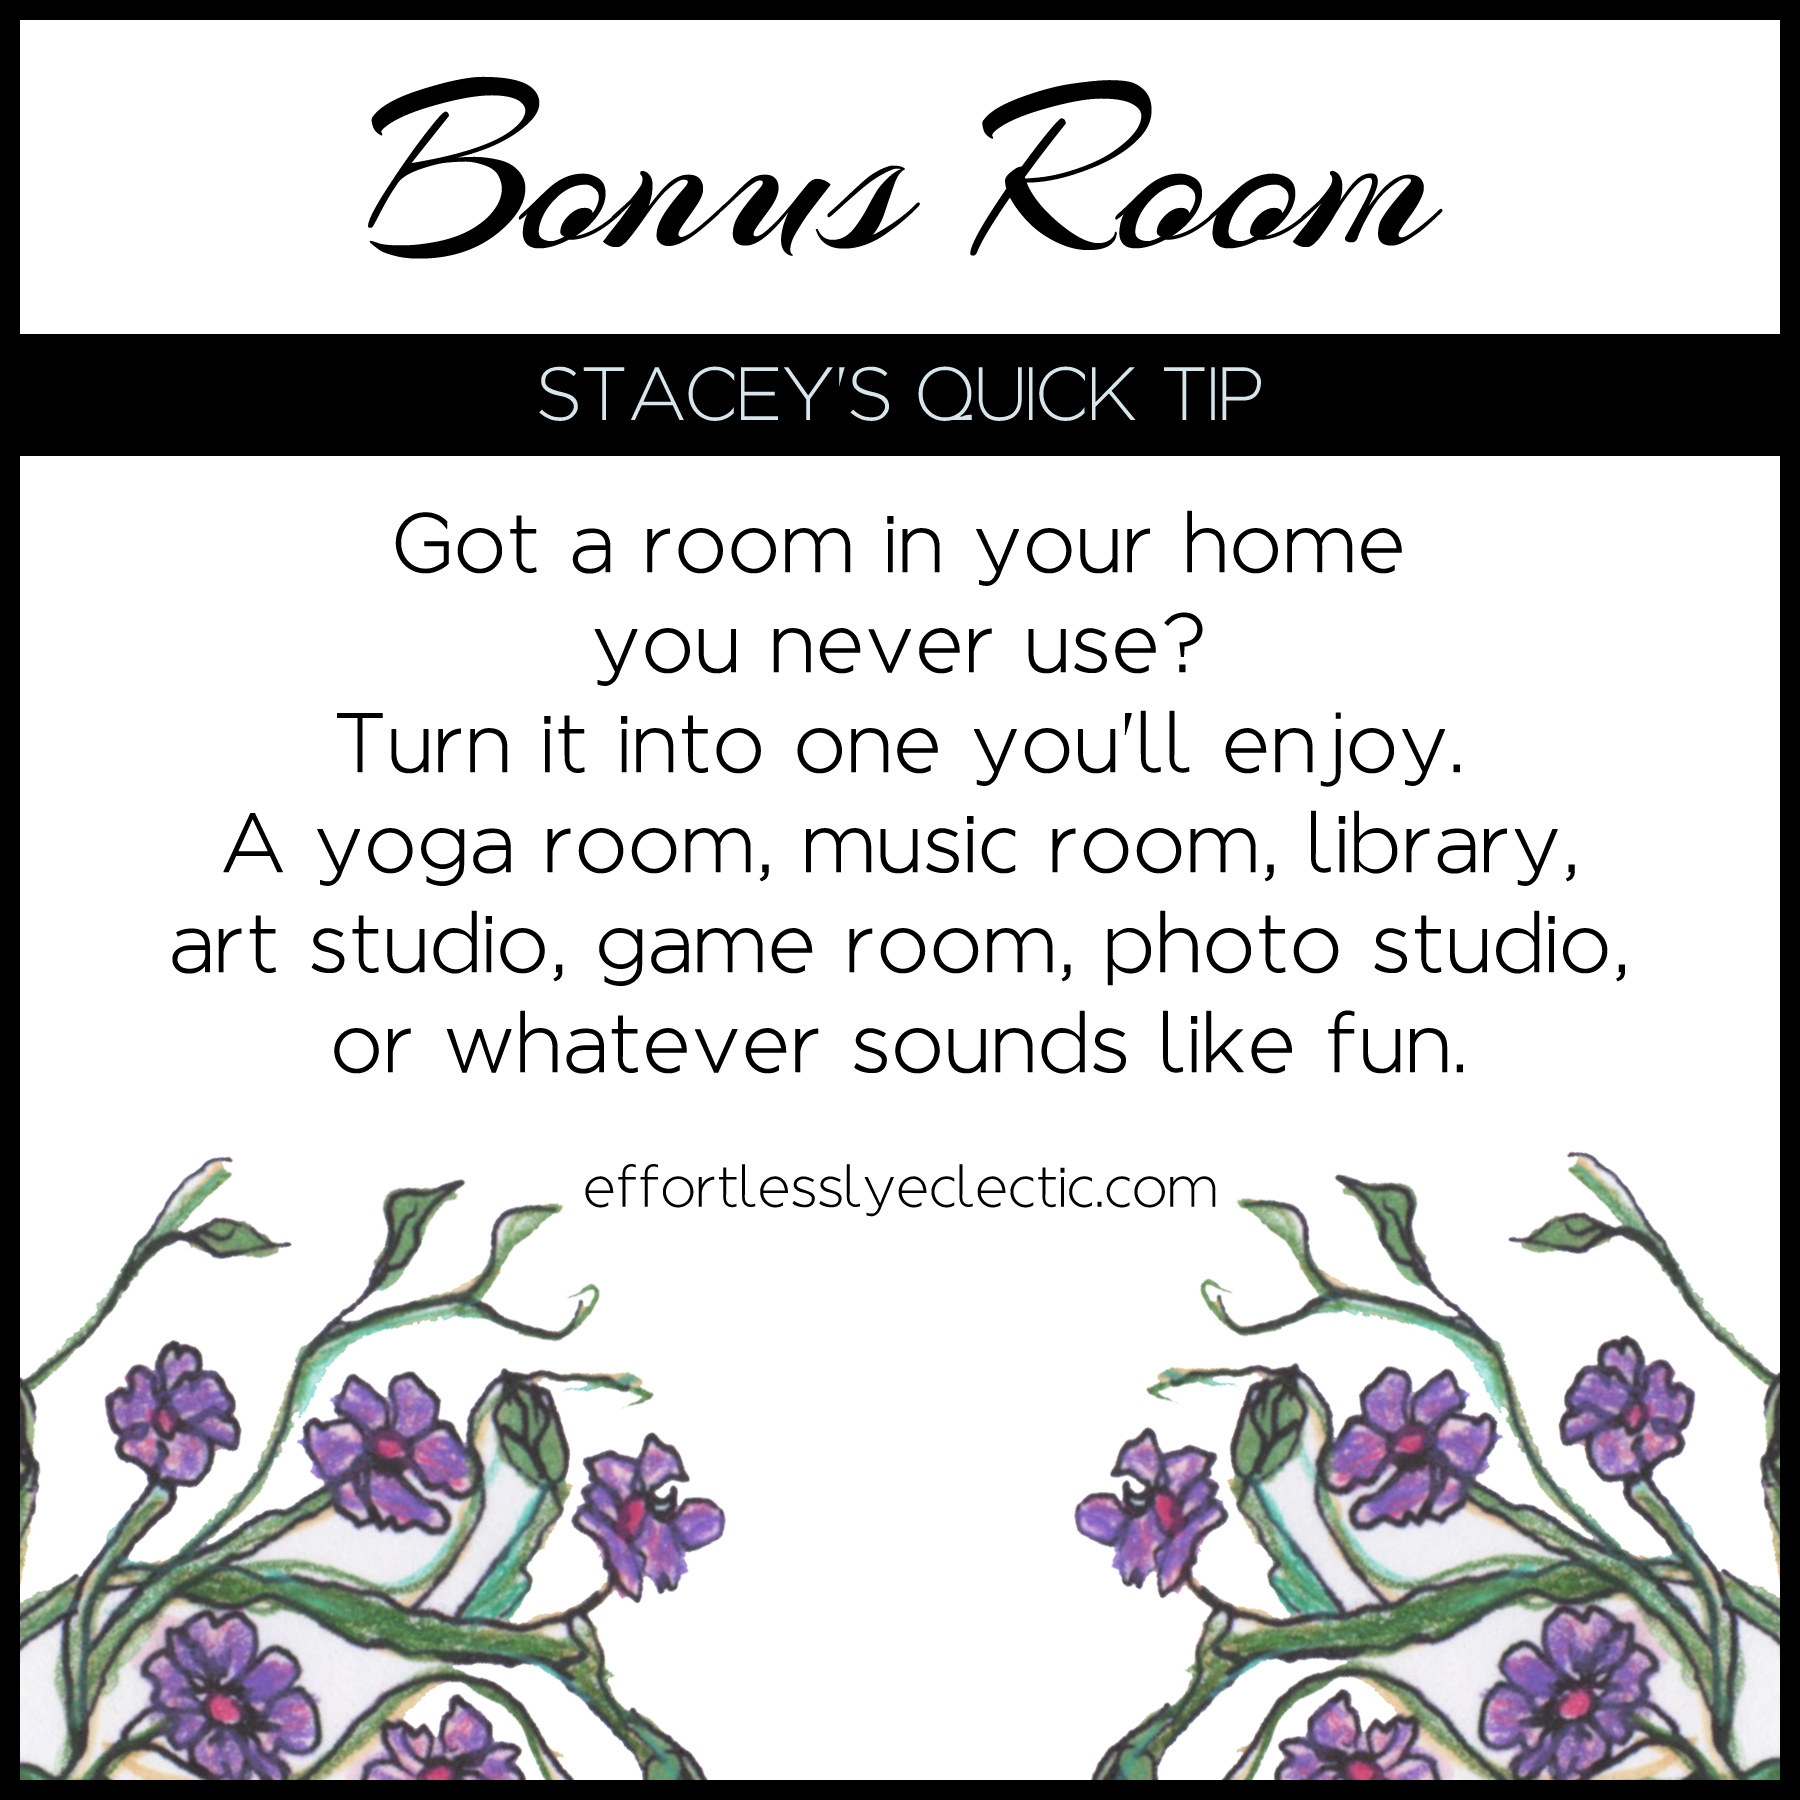 Bonus Room - A home decorating tip about what to do with extra rooms in your home